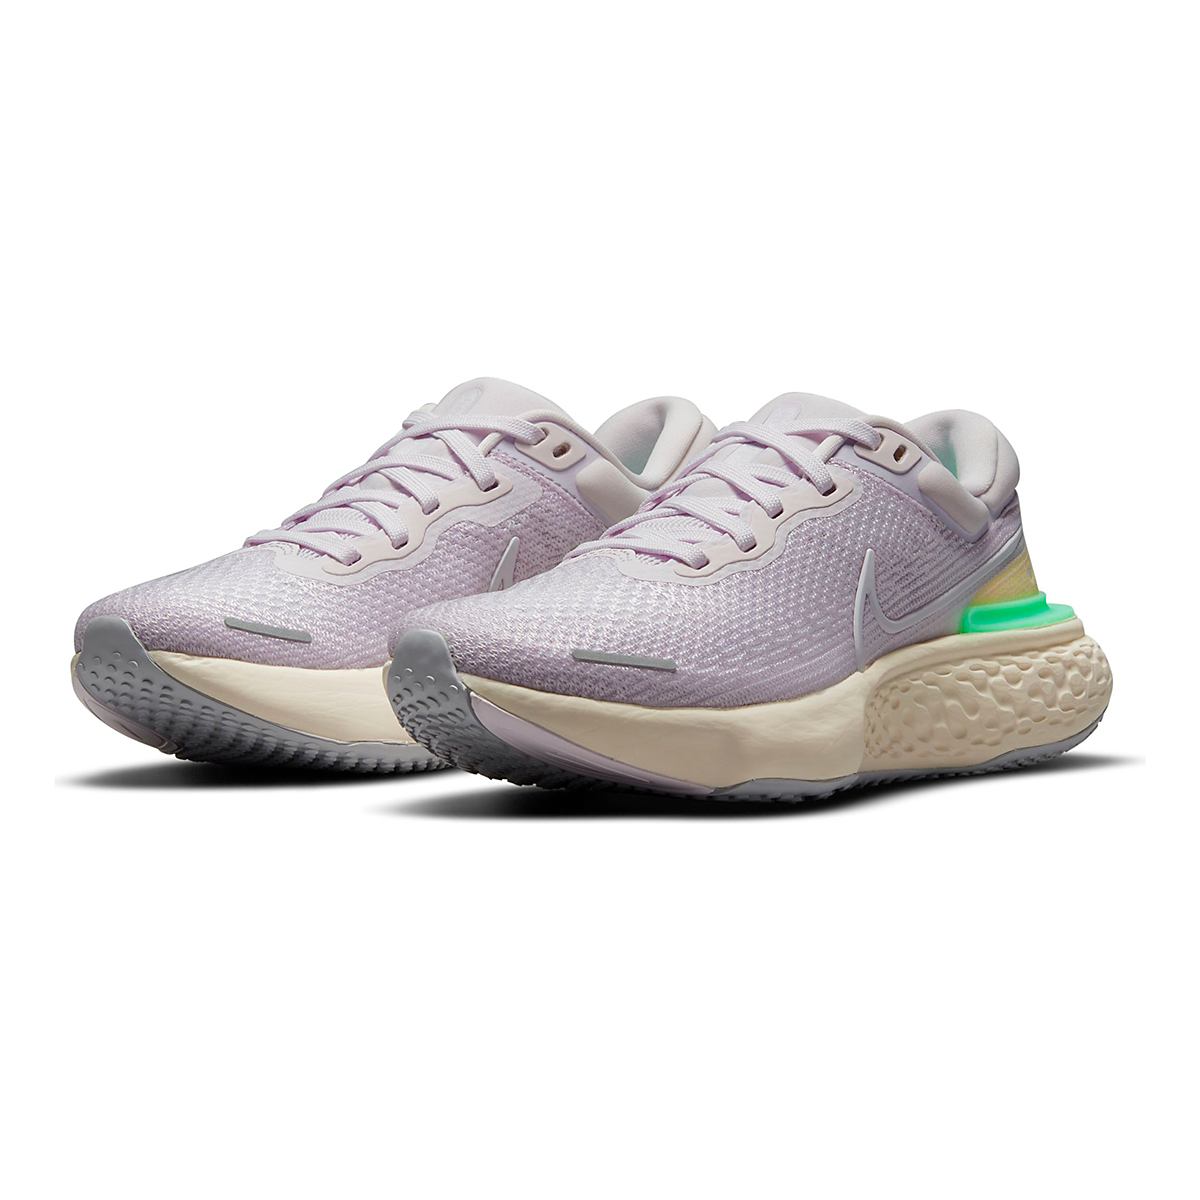 Women's Nike Zoomx Invincible Run FlyKnit Running Shoe - Color: Light Violet/White/Infinite Lilac - Size: 5 - Width: Regular, Light Violet/White/Infinite Lilac, large, image 3